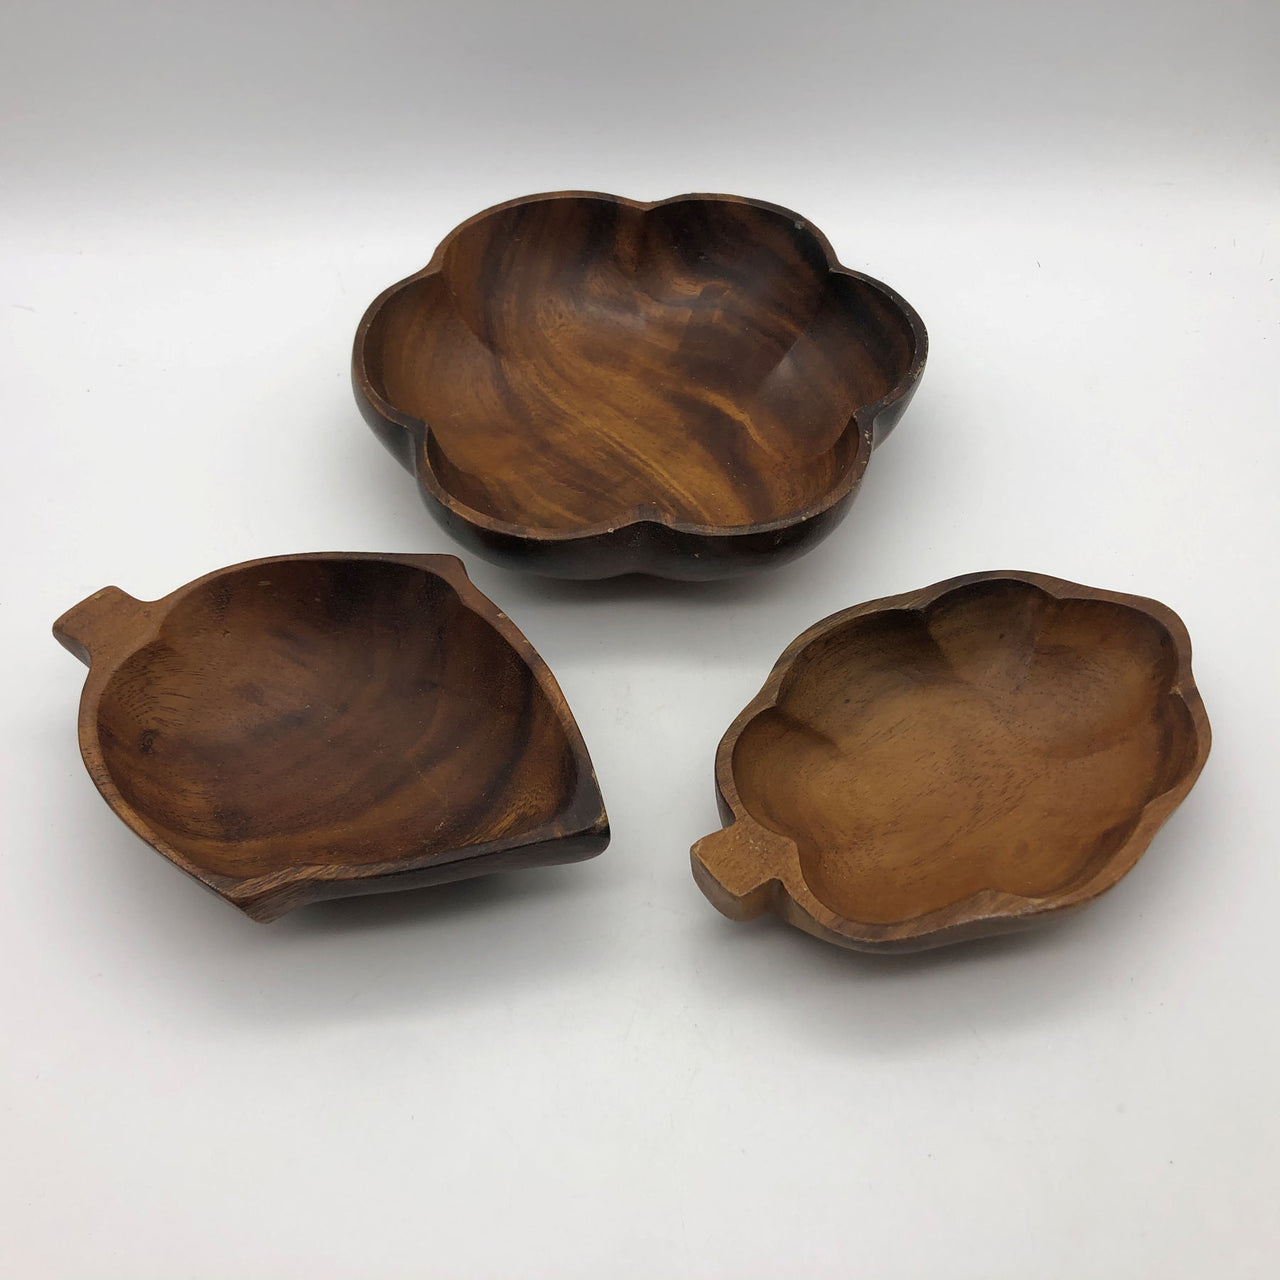 Vintage 3 Carved Wood Bowls Monkeypod for Nuts Candy Trinkets Keys